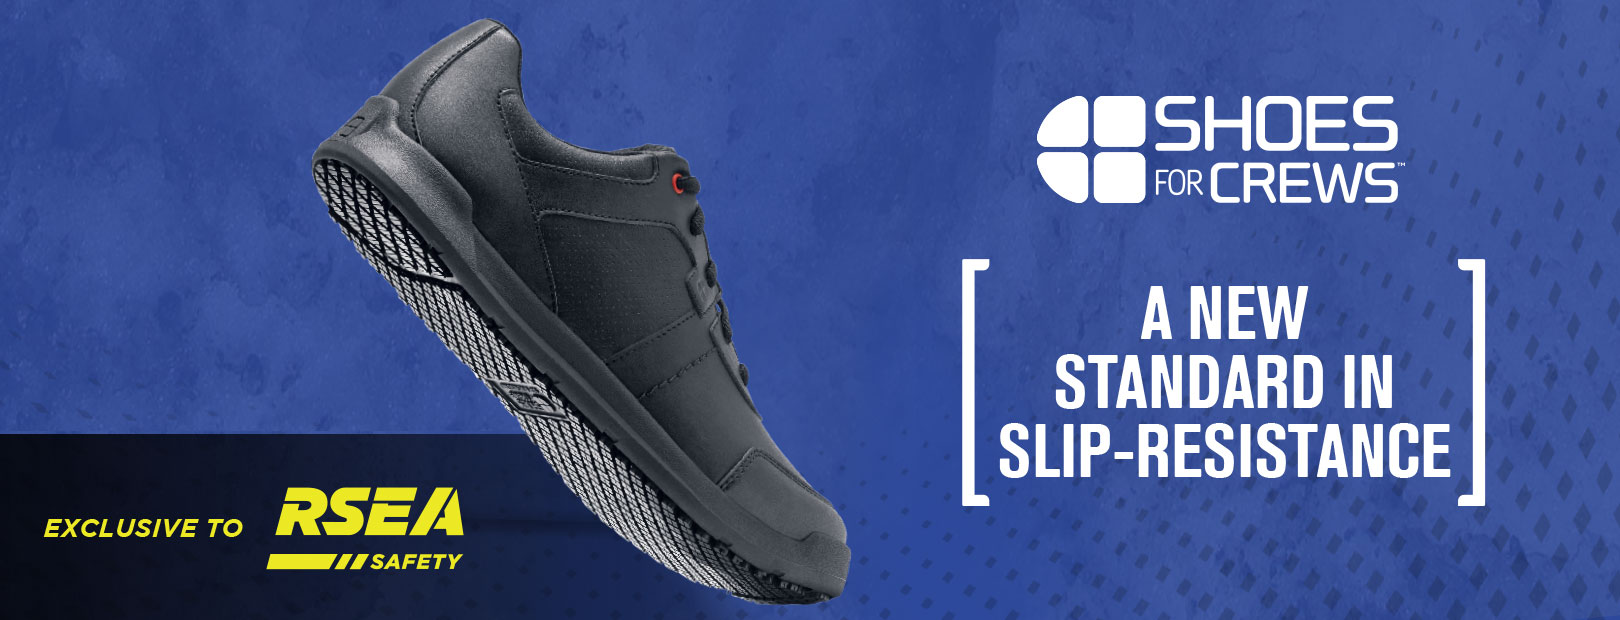 c6f8506108b57b Shoes For Crews   RSEA Safety